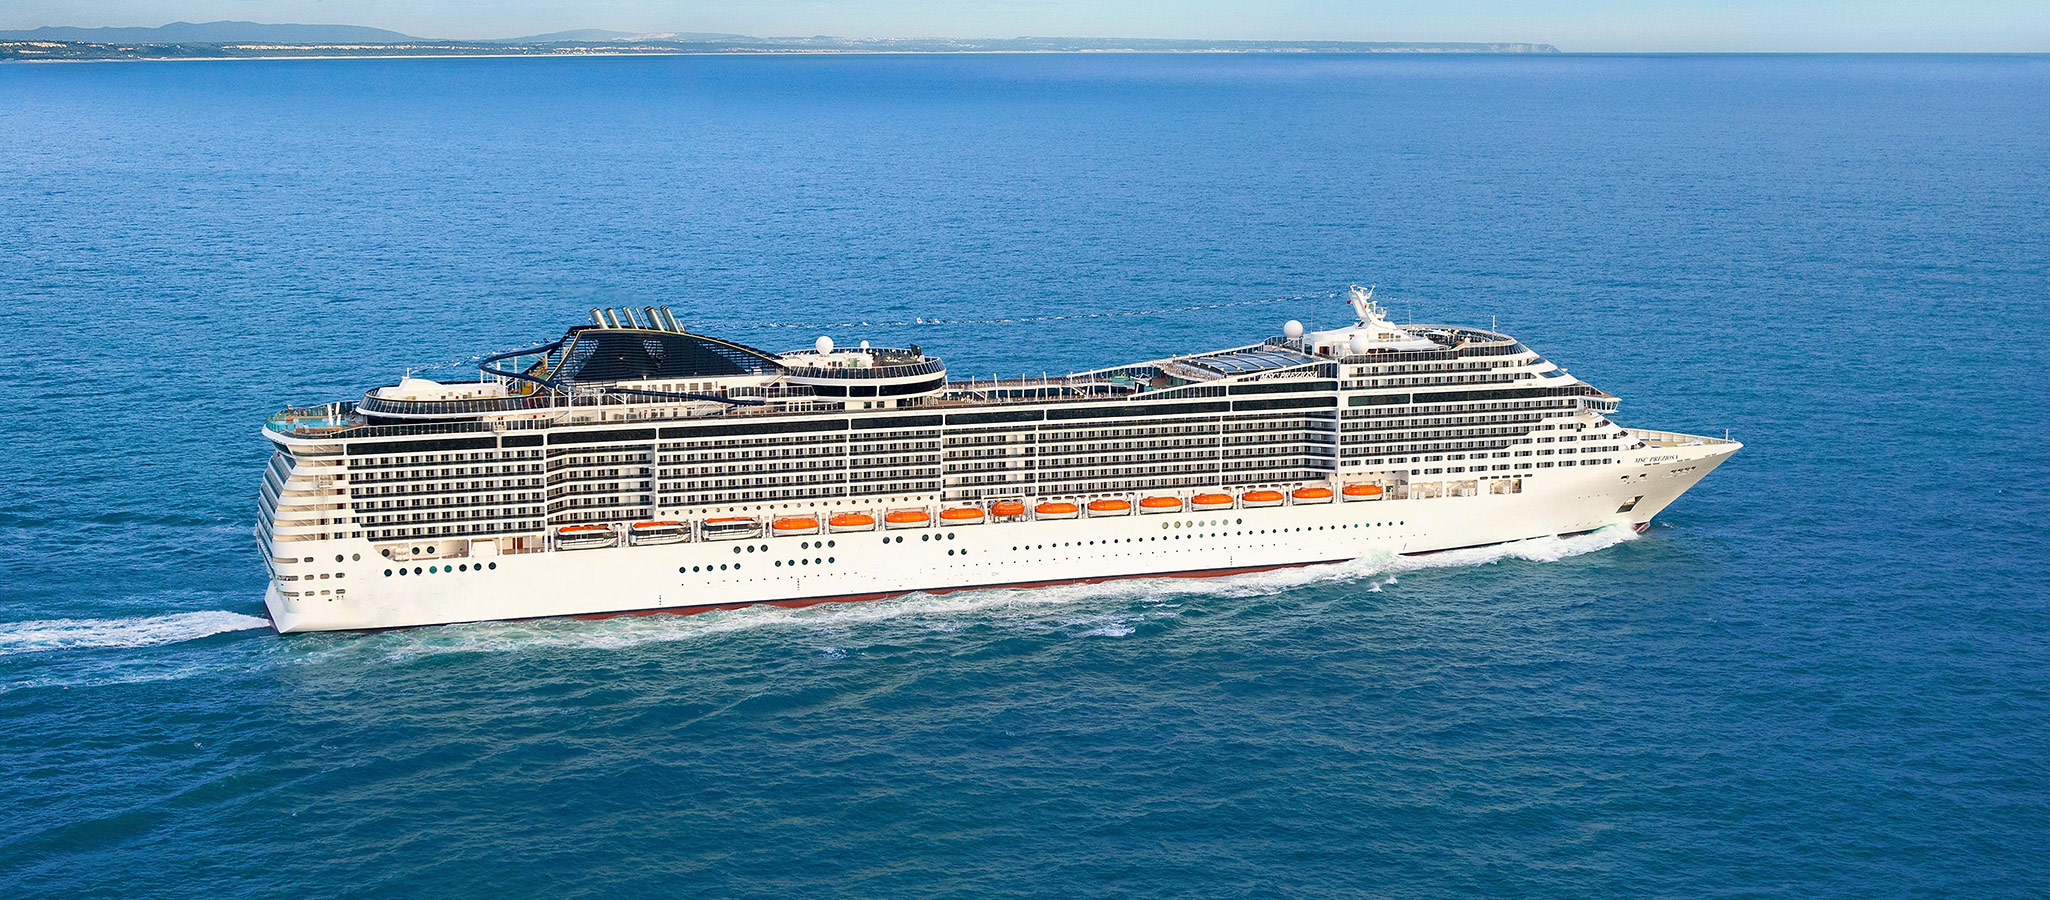 Cruise ships of this size are referred to as resort ships. Like at a resort, simply everything needed for events, incentives, conferences and entertainment is on hand on board.